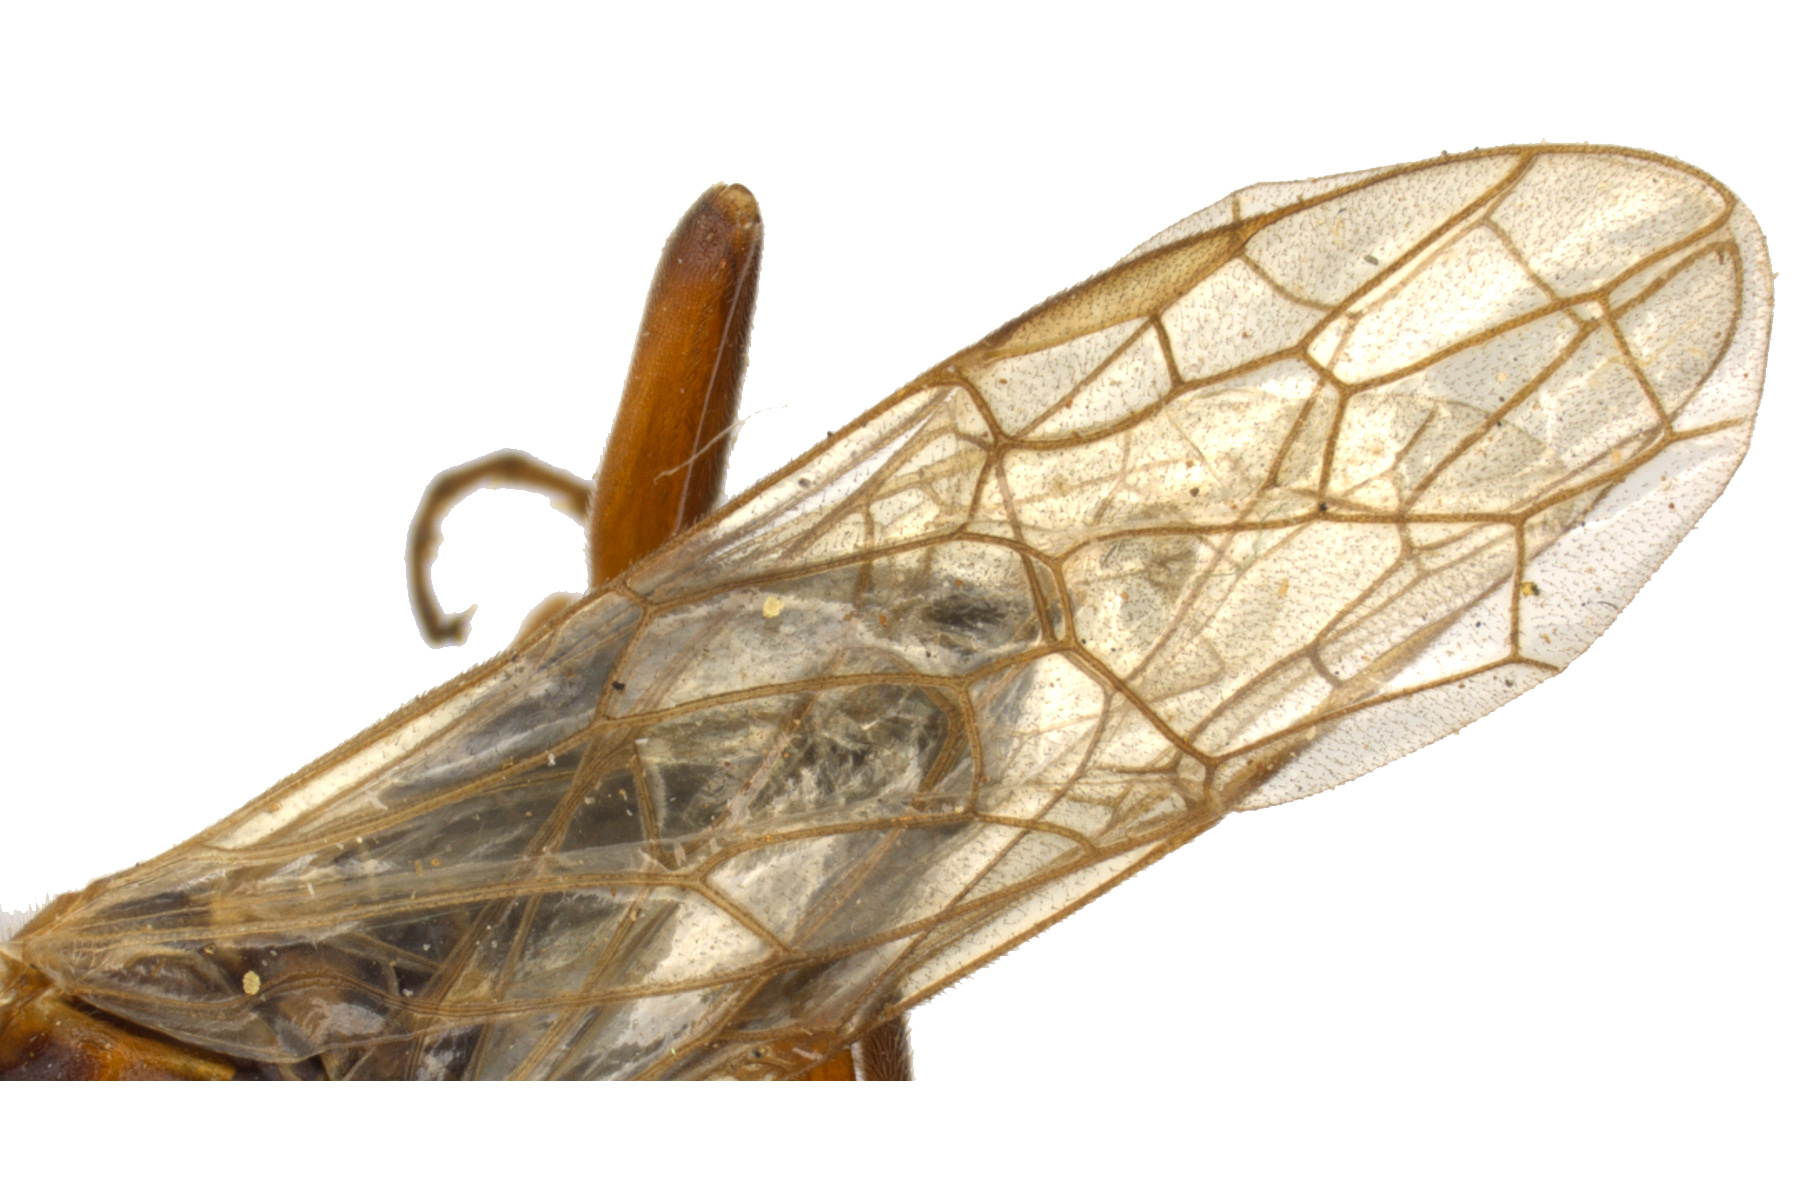 Xyelecia nearctica fore wing; photo by J. Orr, WSDA